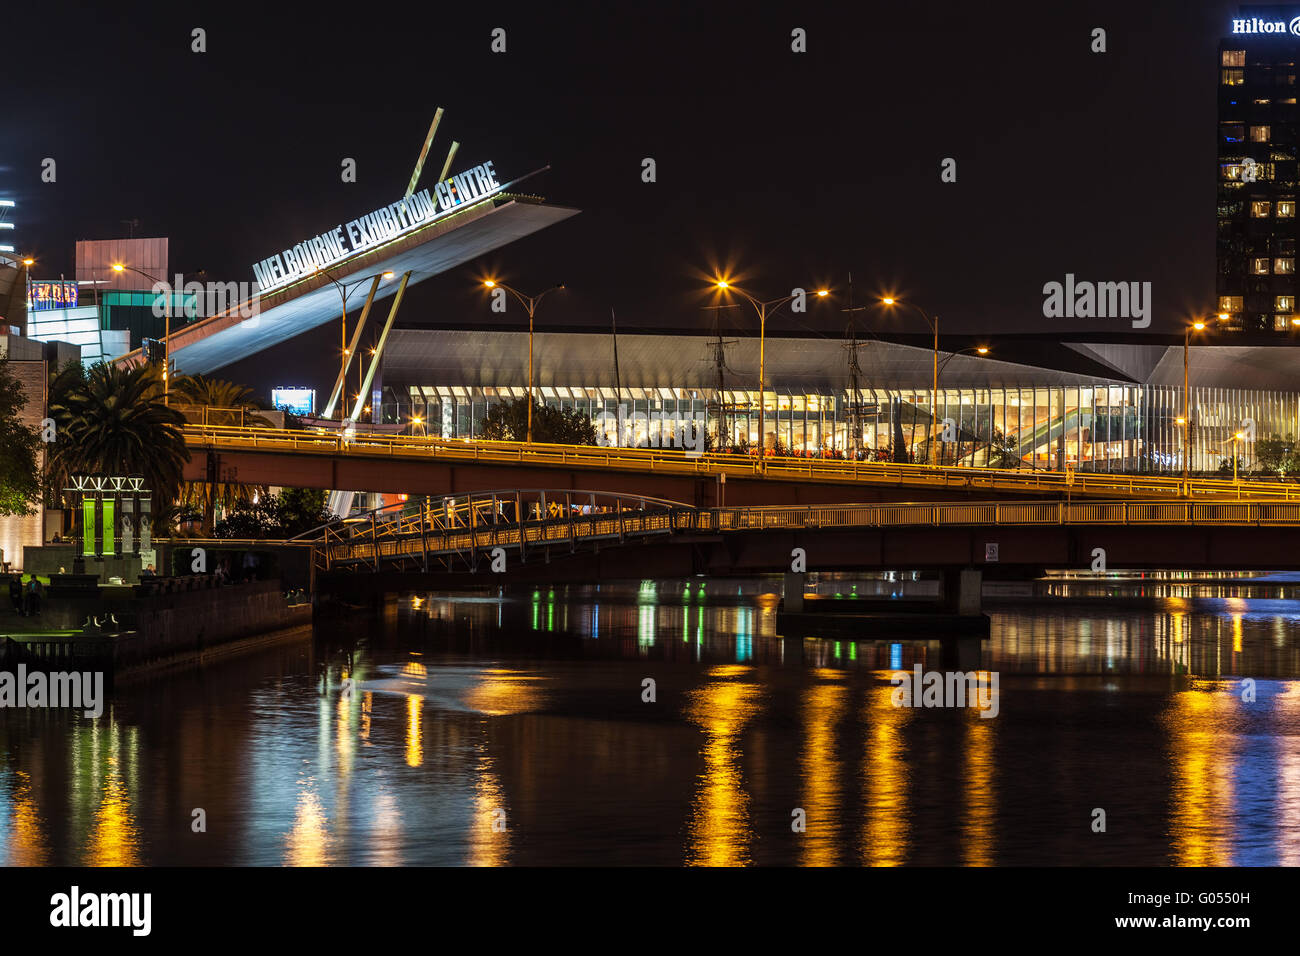 Melbourne CBD - APR 16 2016: Nightscape closeup of Melbourne Exhibition Centre sign - Stock Image